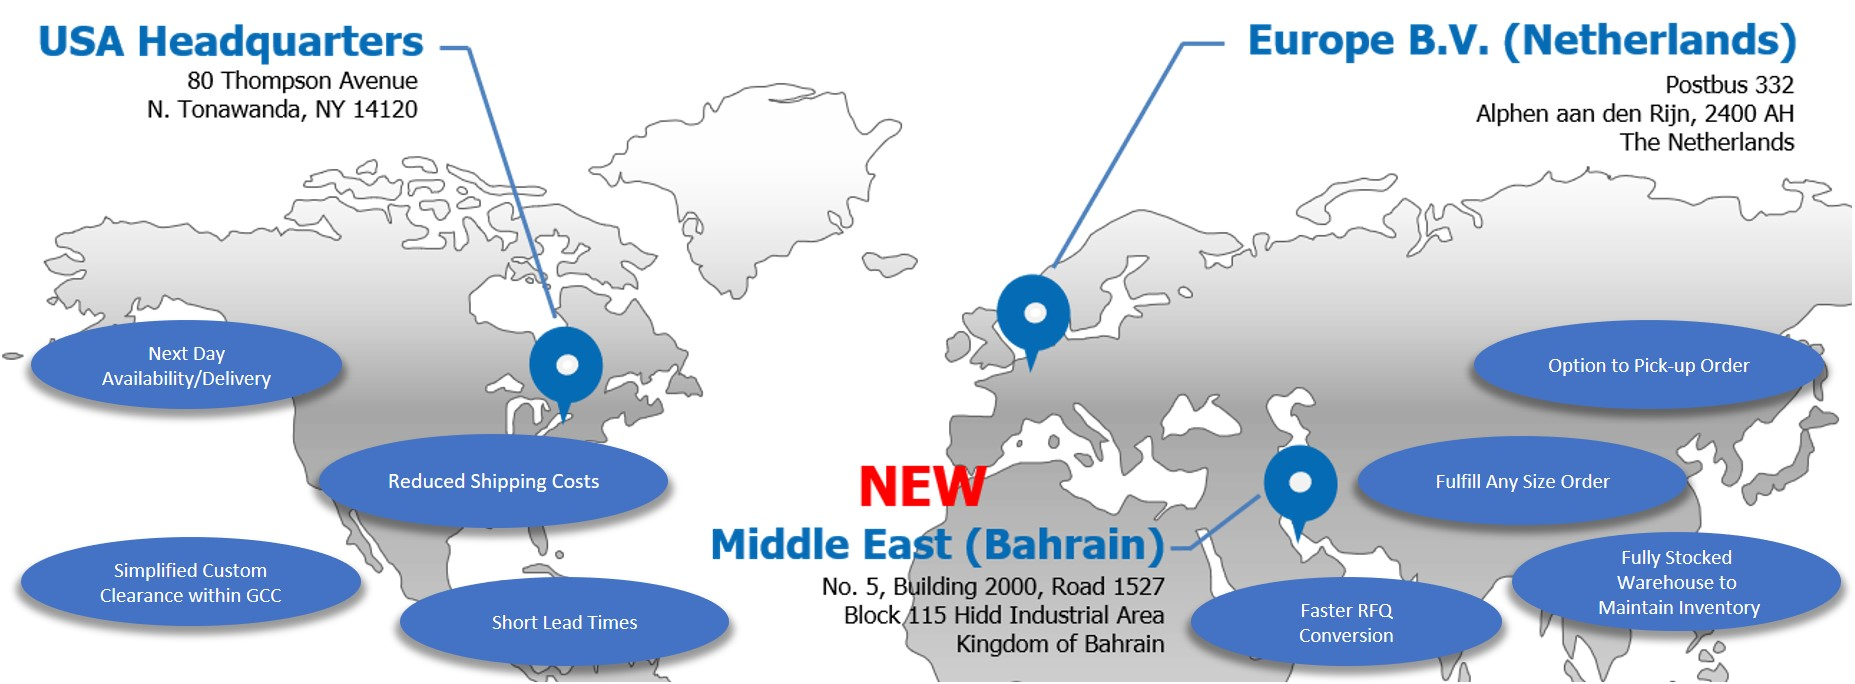 New branch in middle east